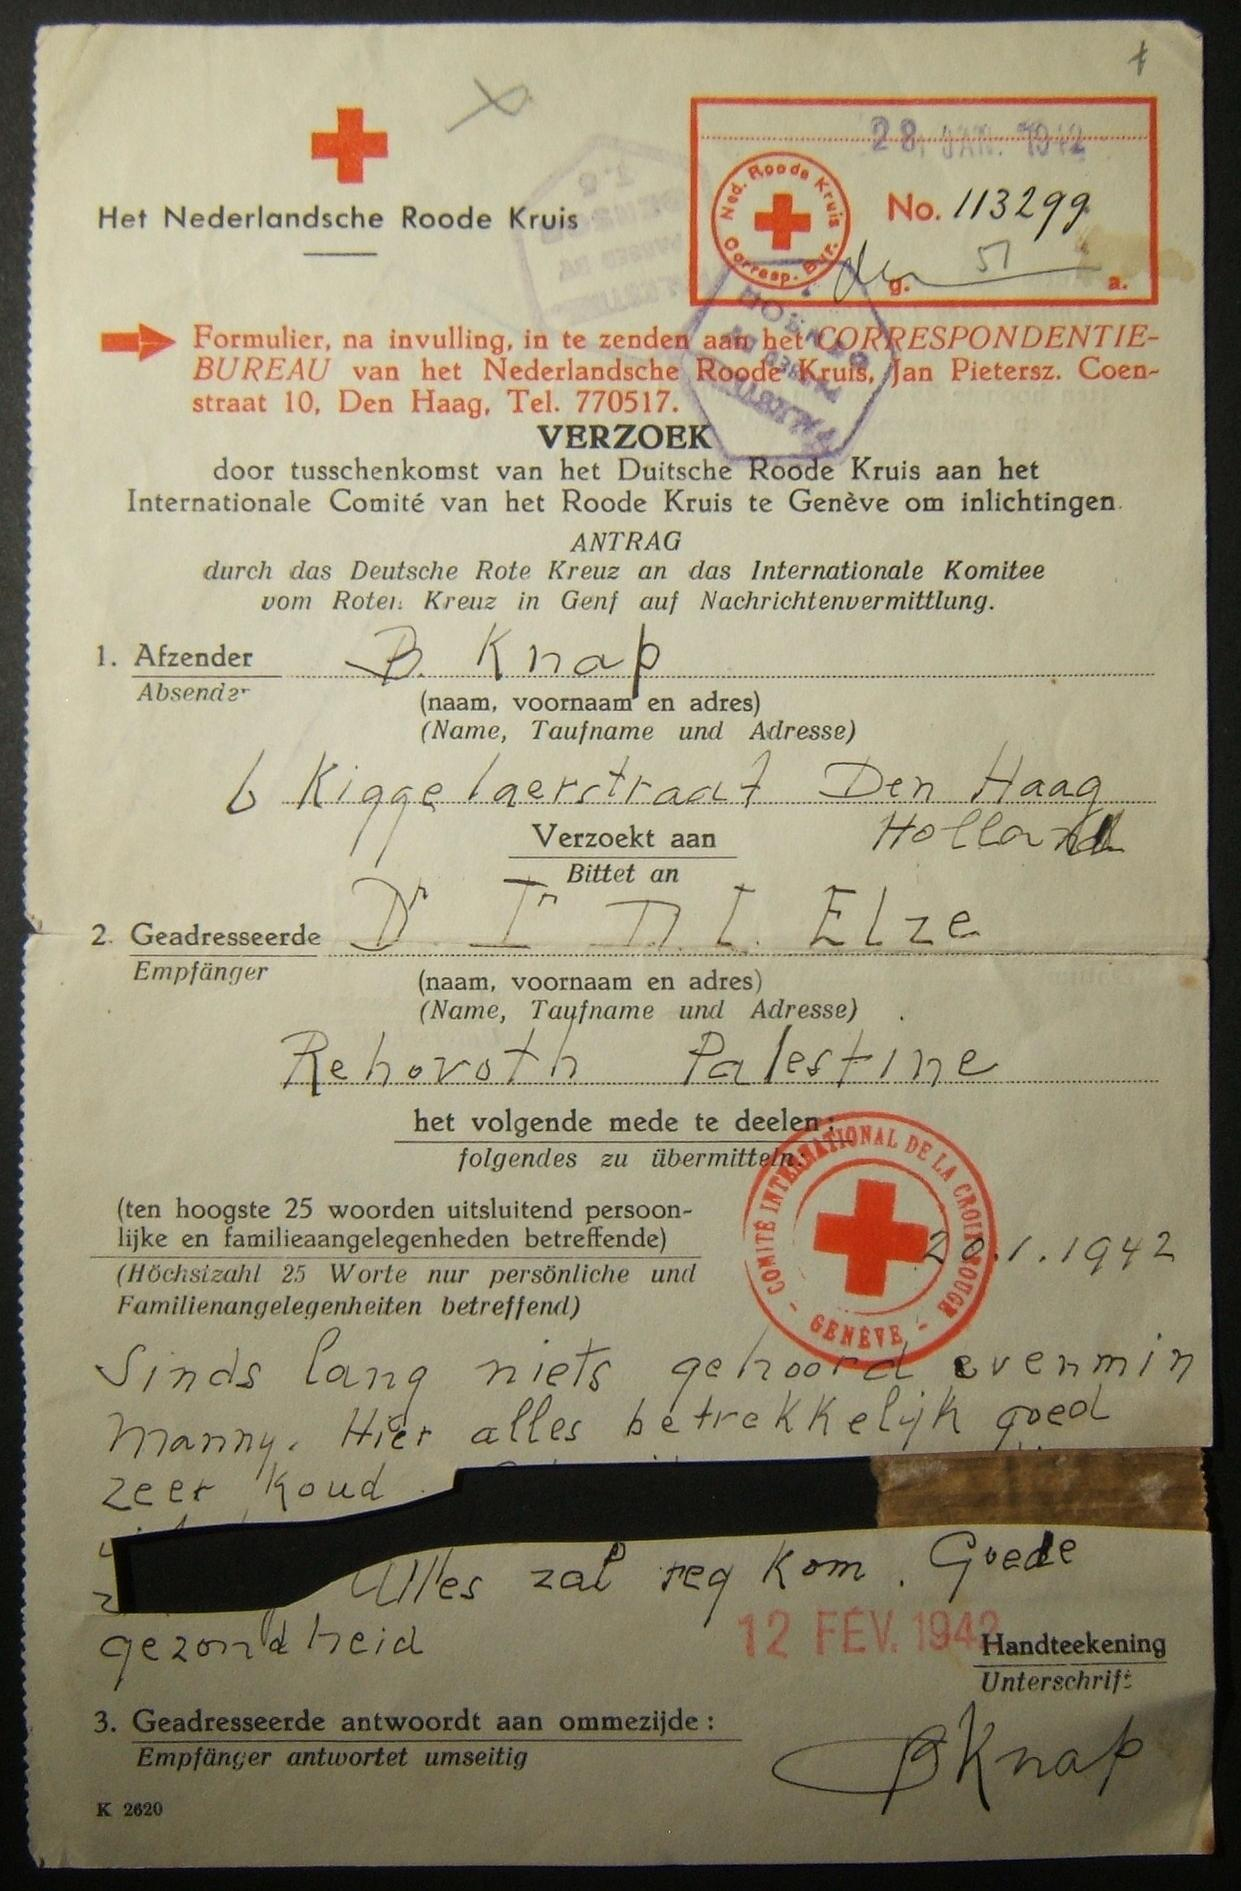 Wartime WWII/Holocaust-era incoming Red Cross mail: 28 JAN 1942 stampless Dutch Red Cross contact form with 25 word message dated 20 Jan, from THE HAGUE to REHOVOT, dispatched with